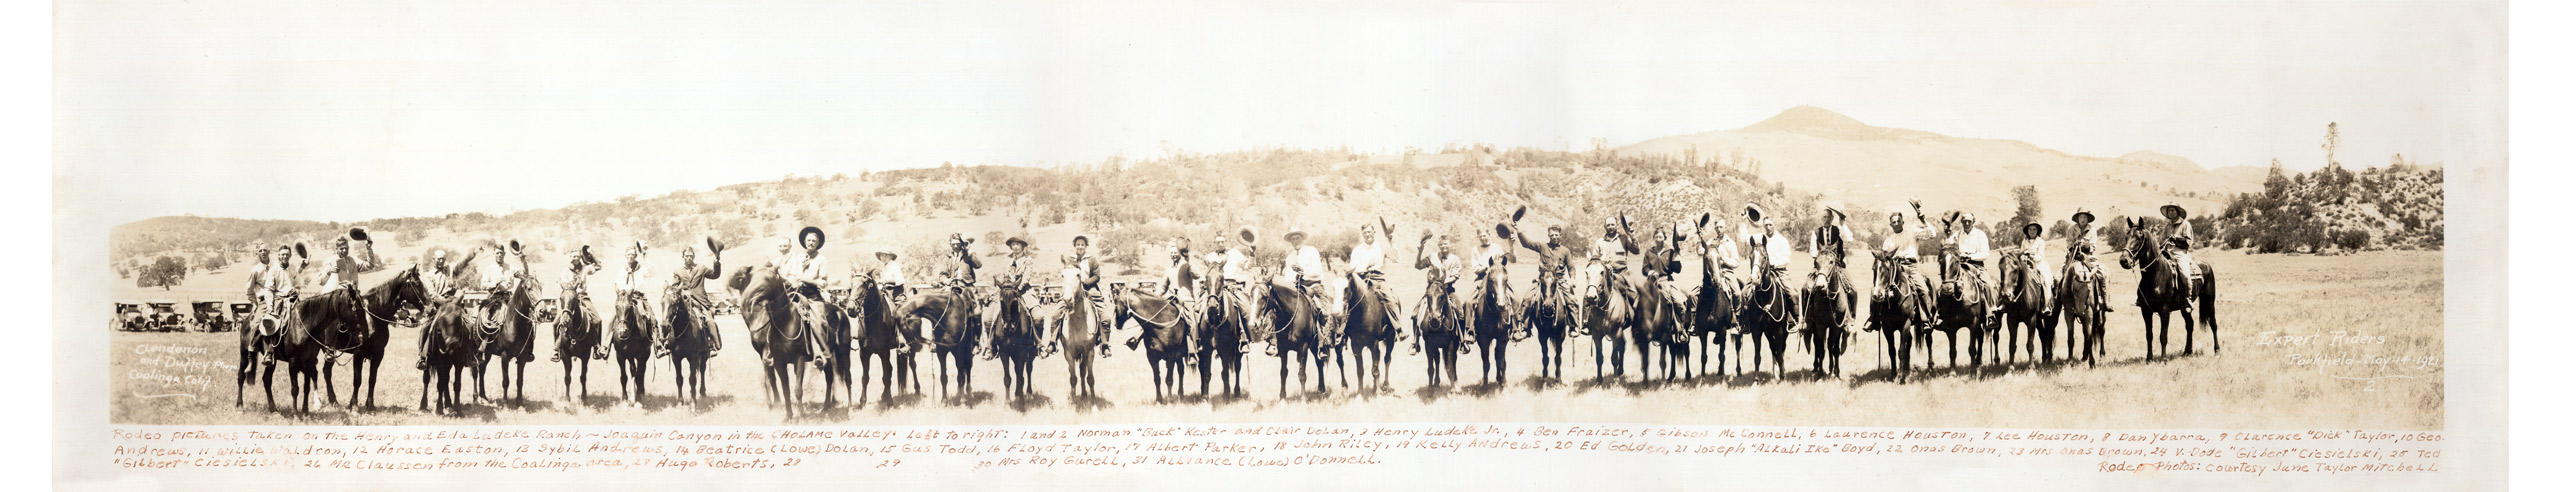 Parkfield_Rodeo_1921